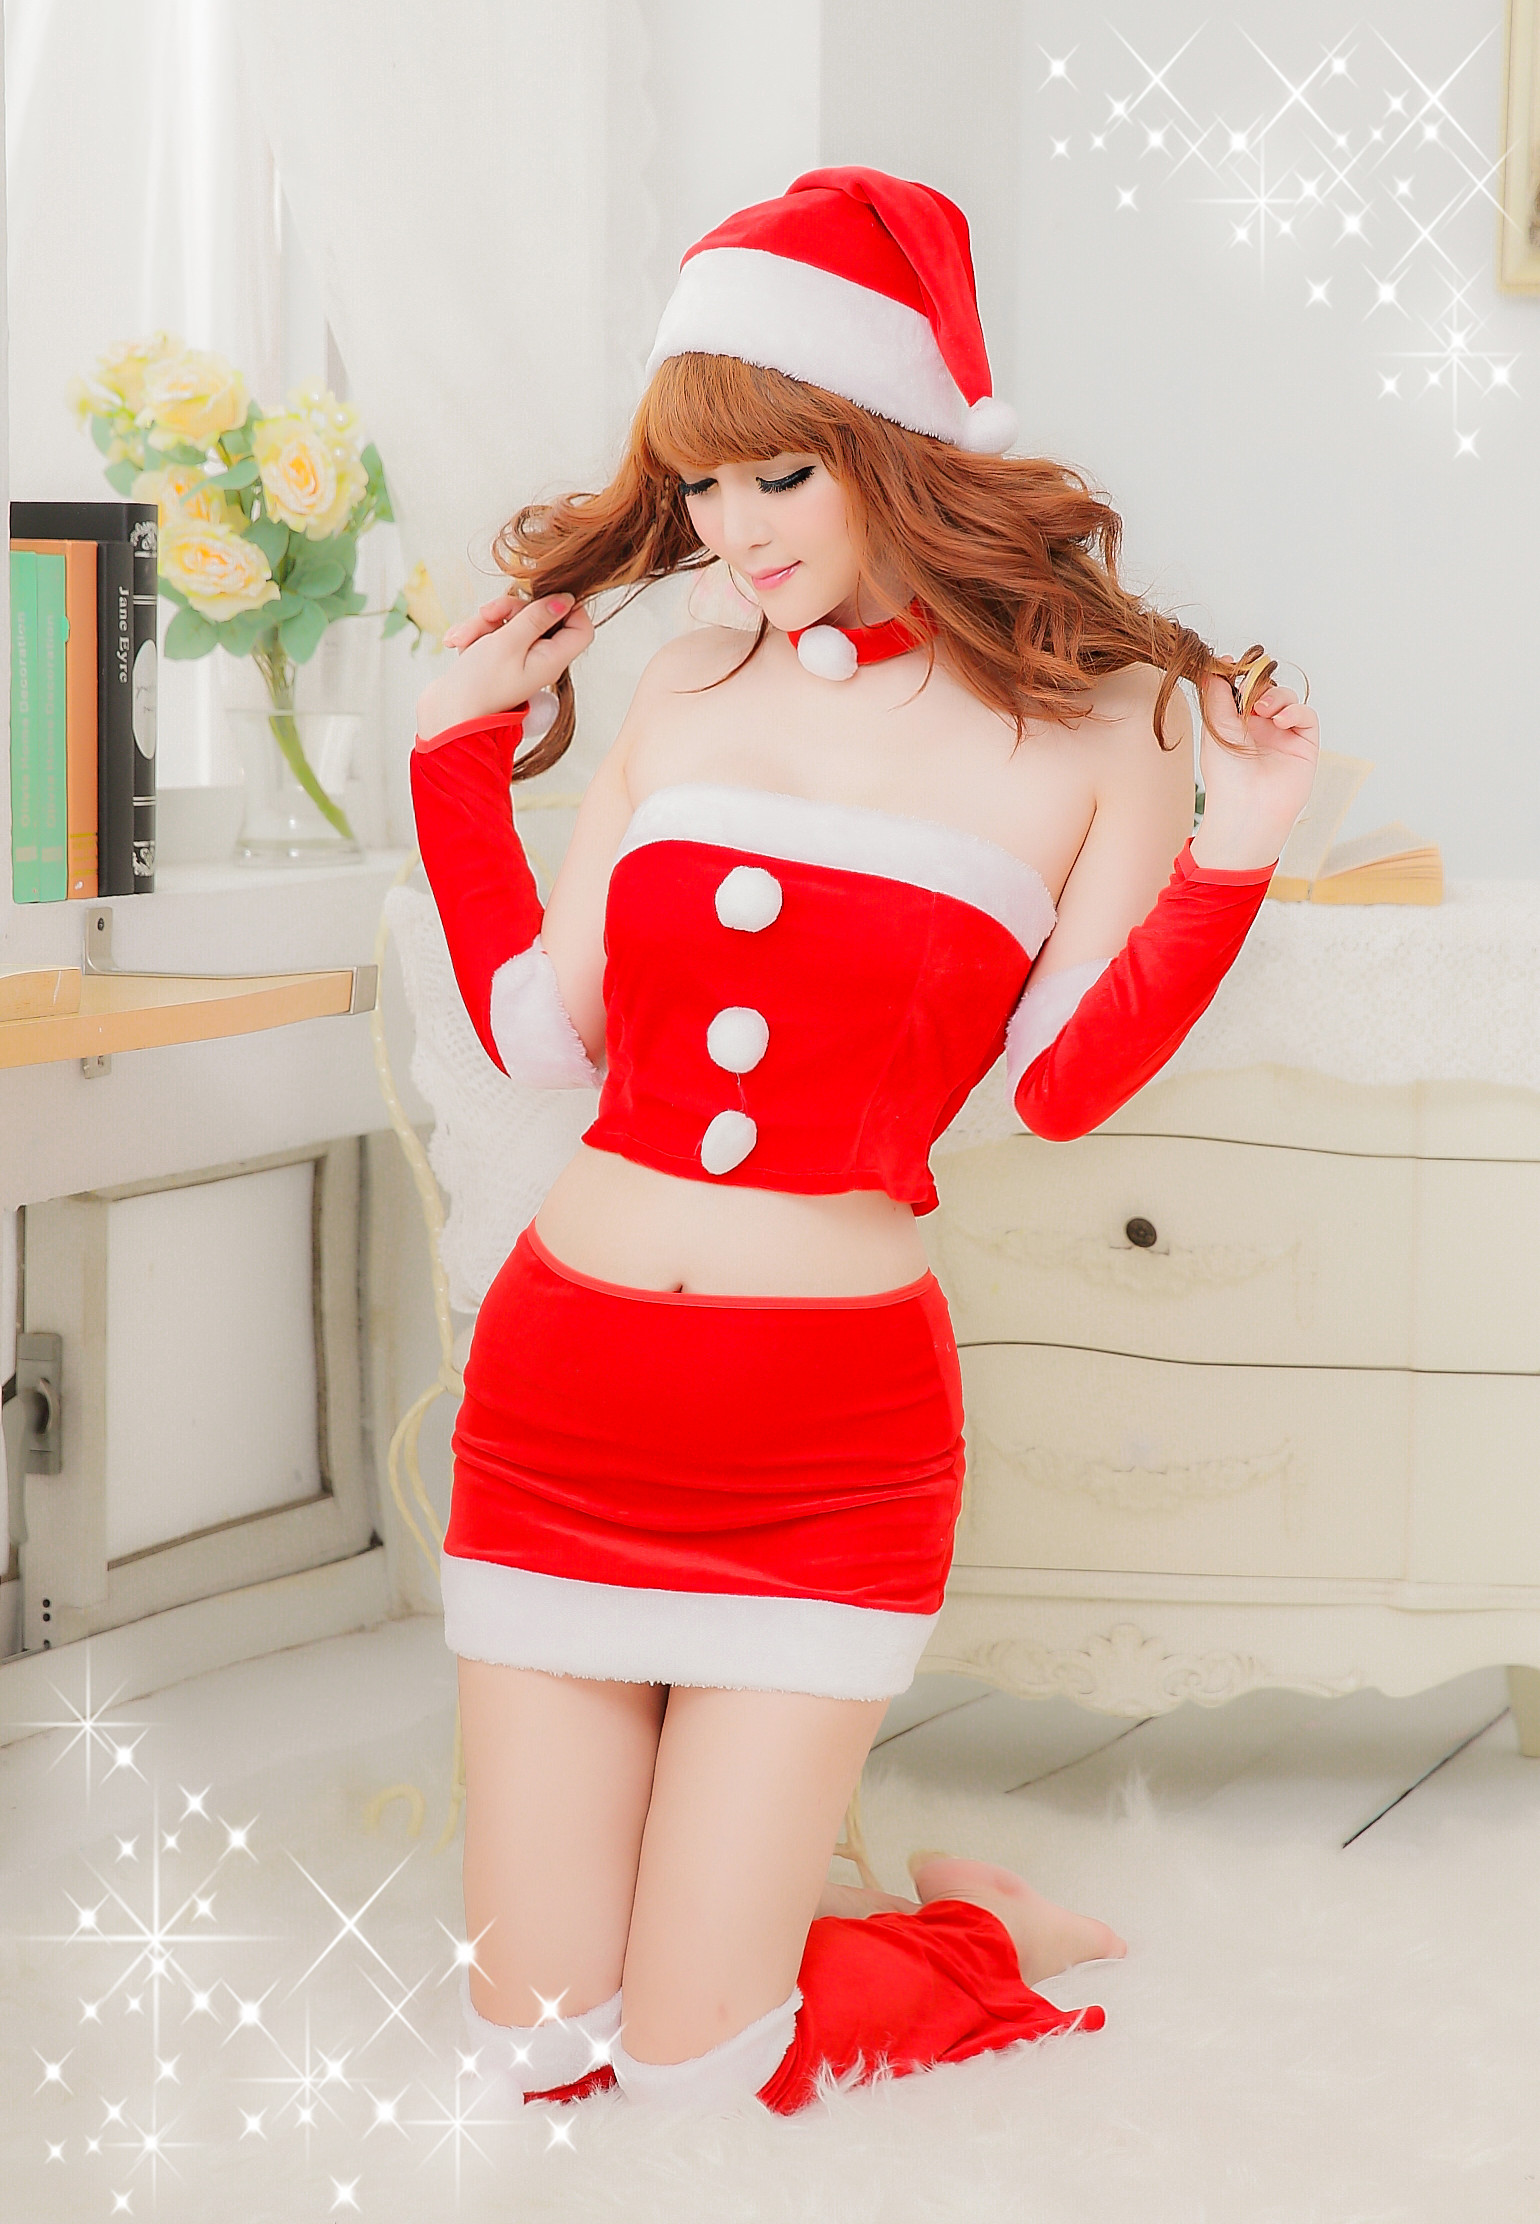 Joyous Christmas with Christmas costumes Christmas costume role play uniforms temptations nightclub bar girls costume